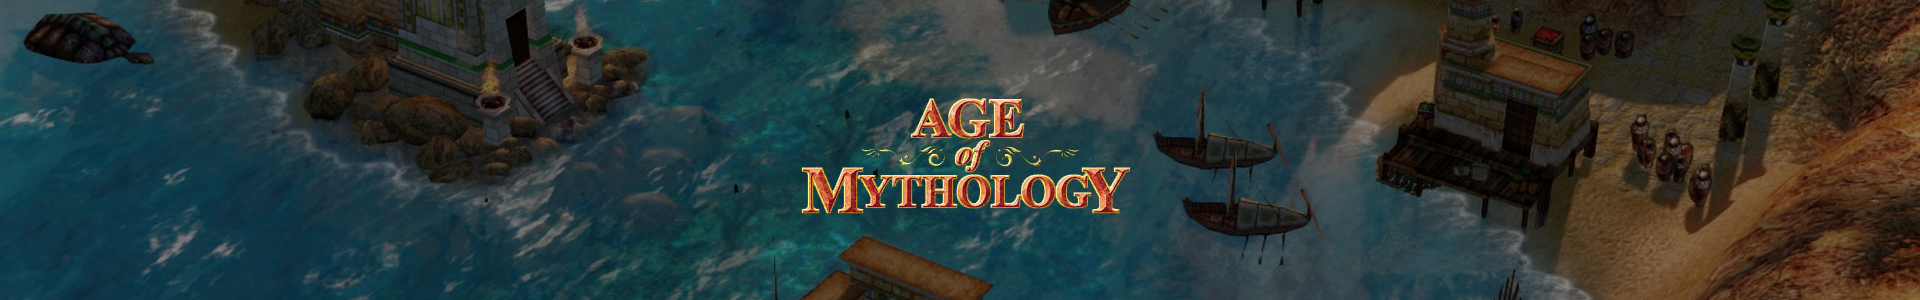 age of mythology statistics